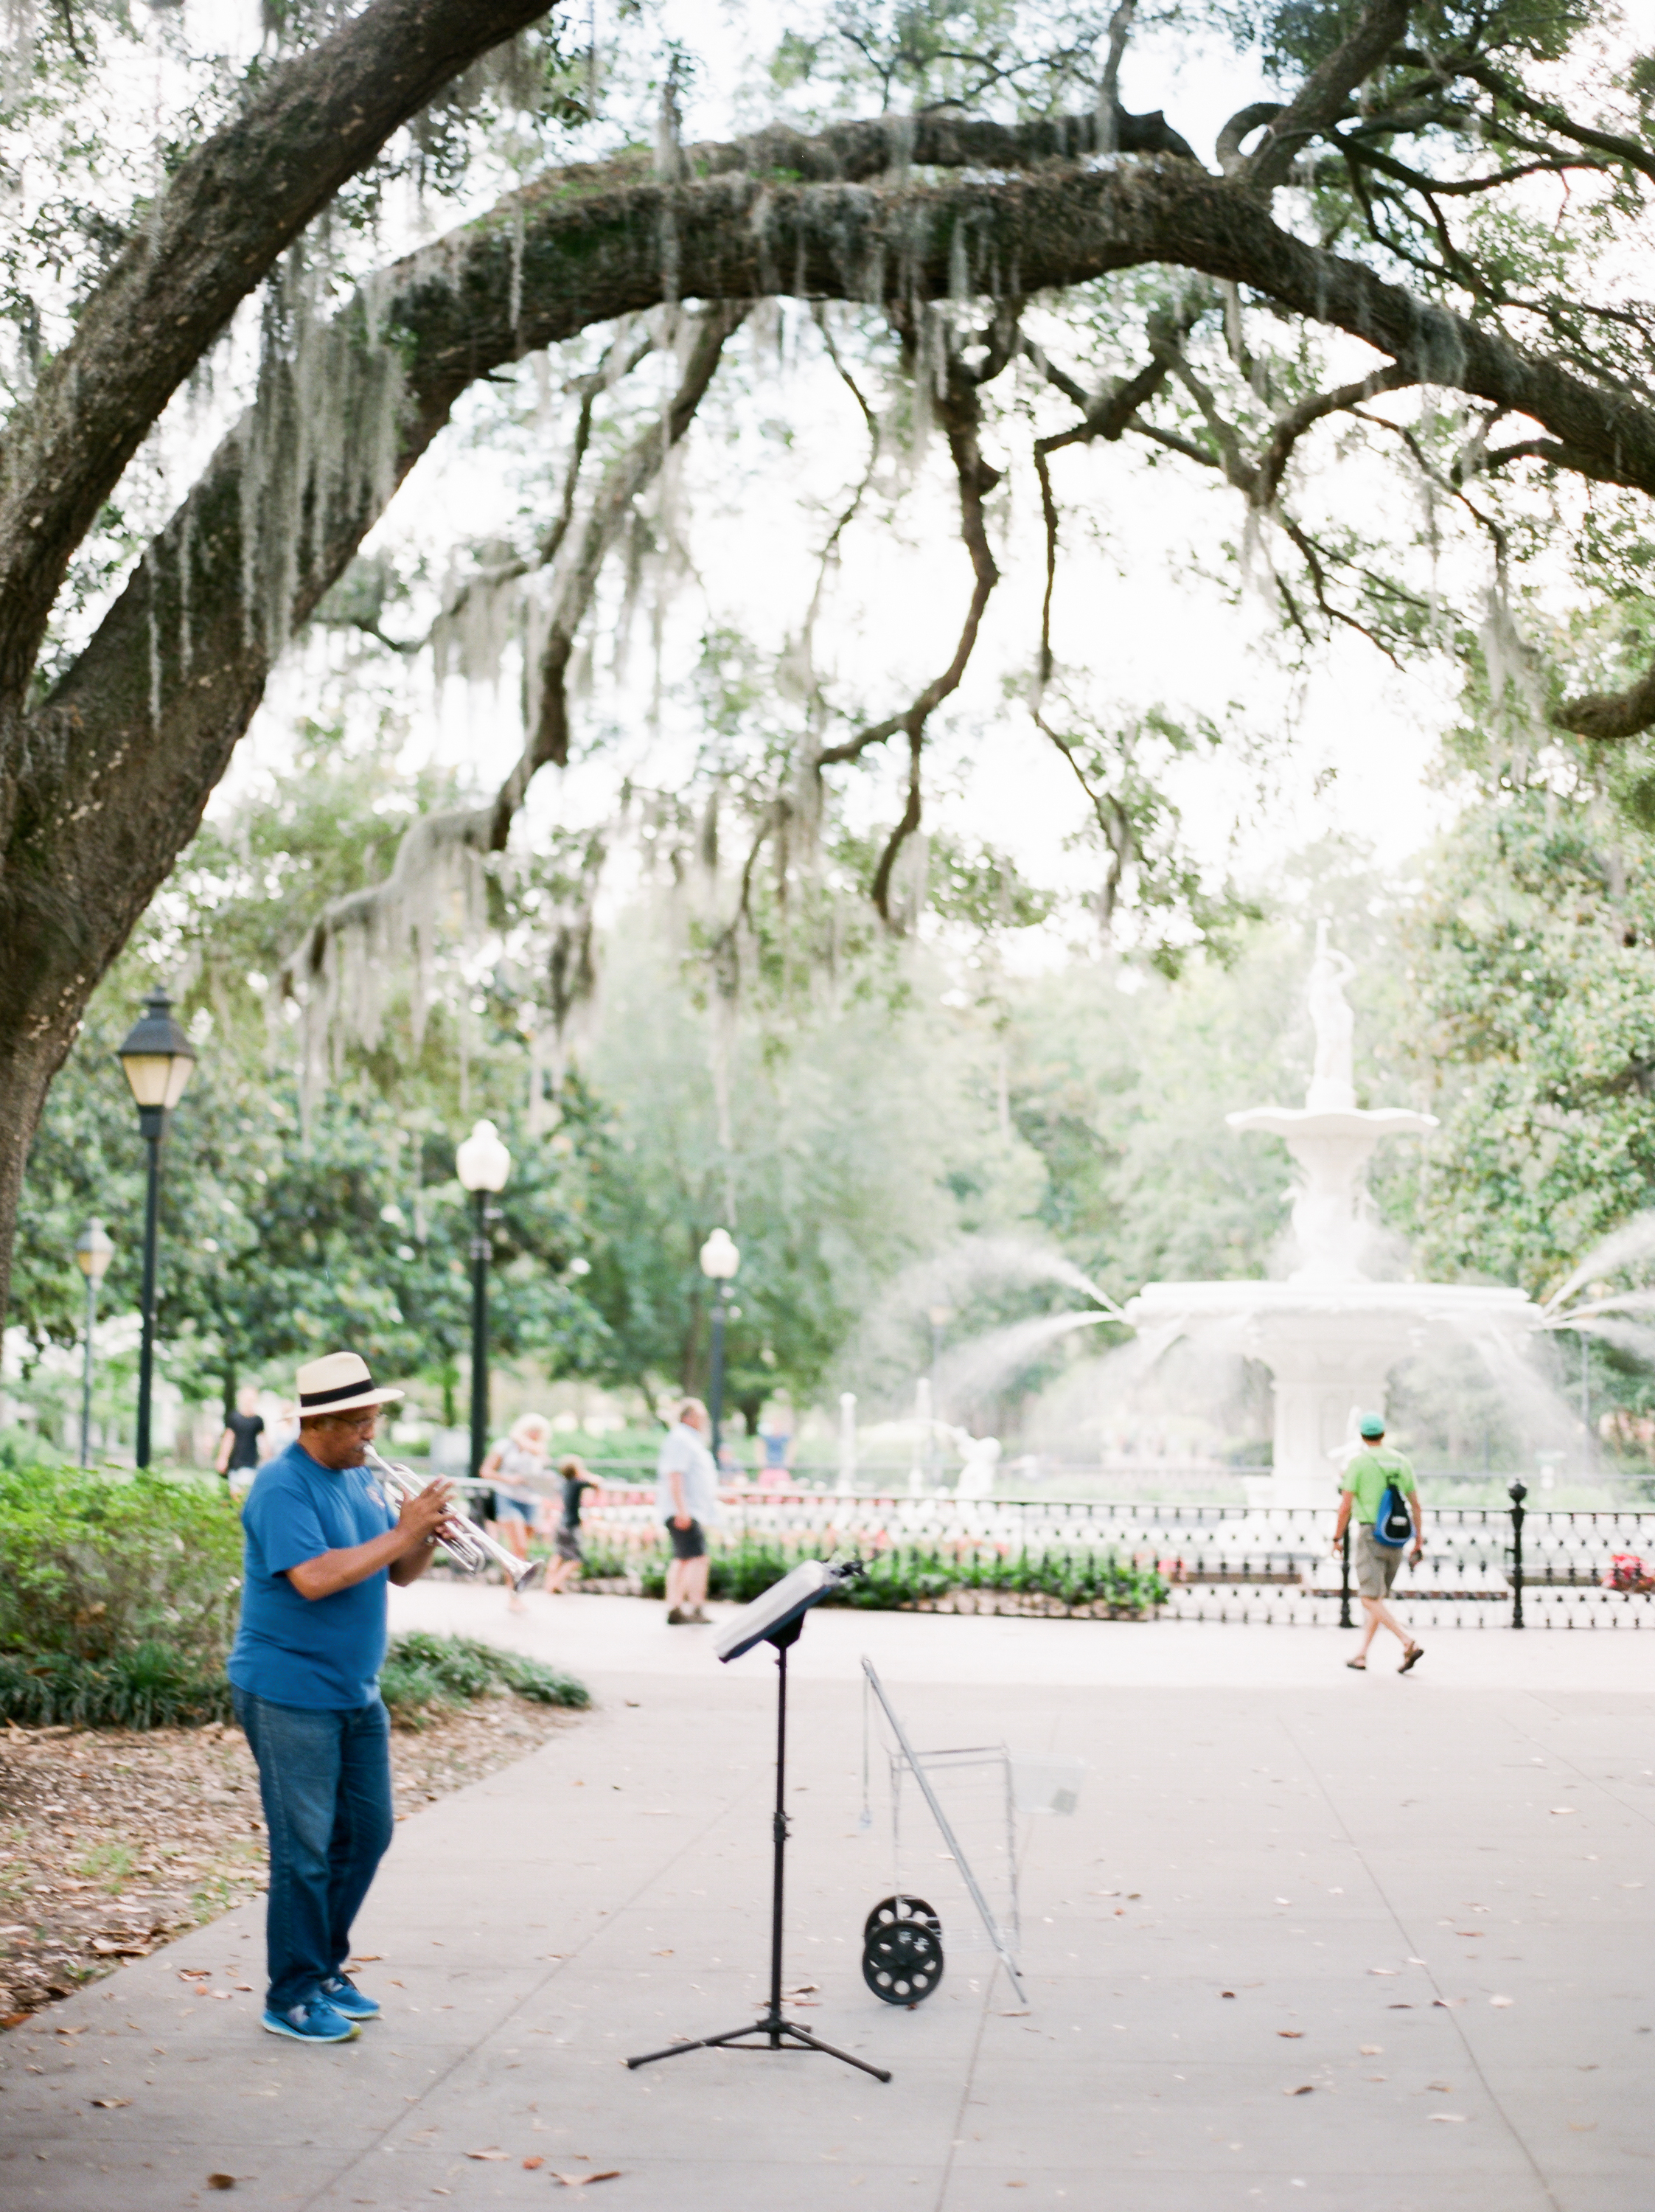 savannah-ga-forsythpark-wedding-kayliebpoplinphotography